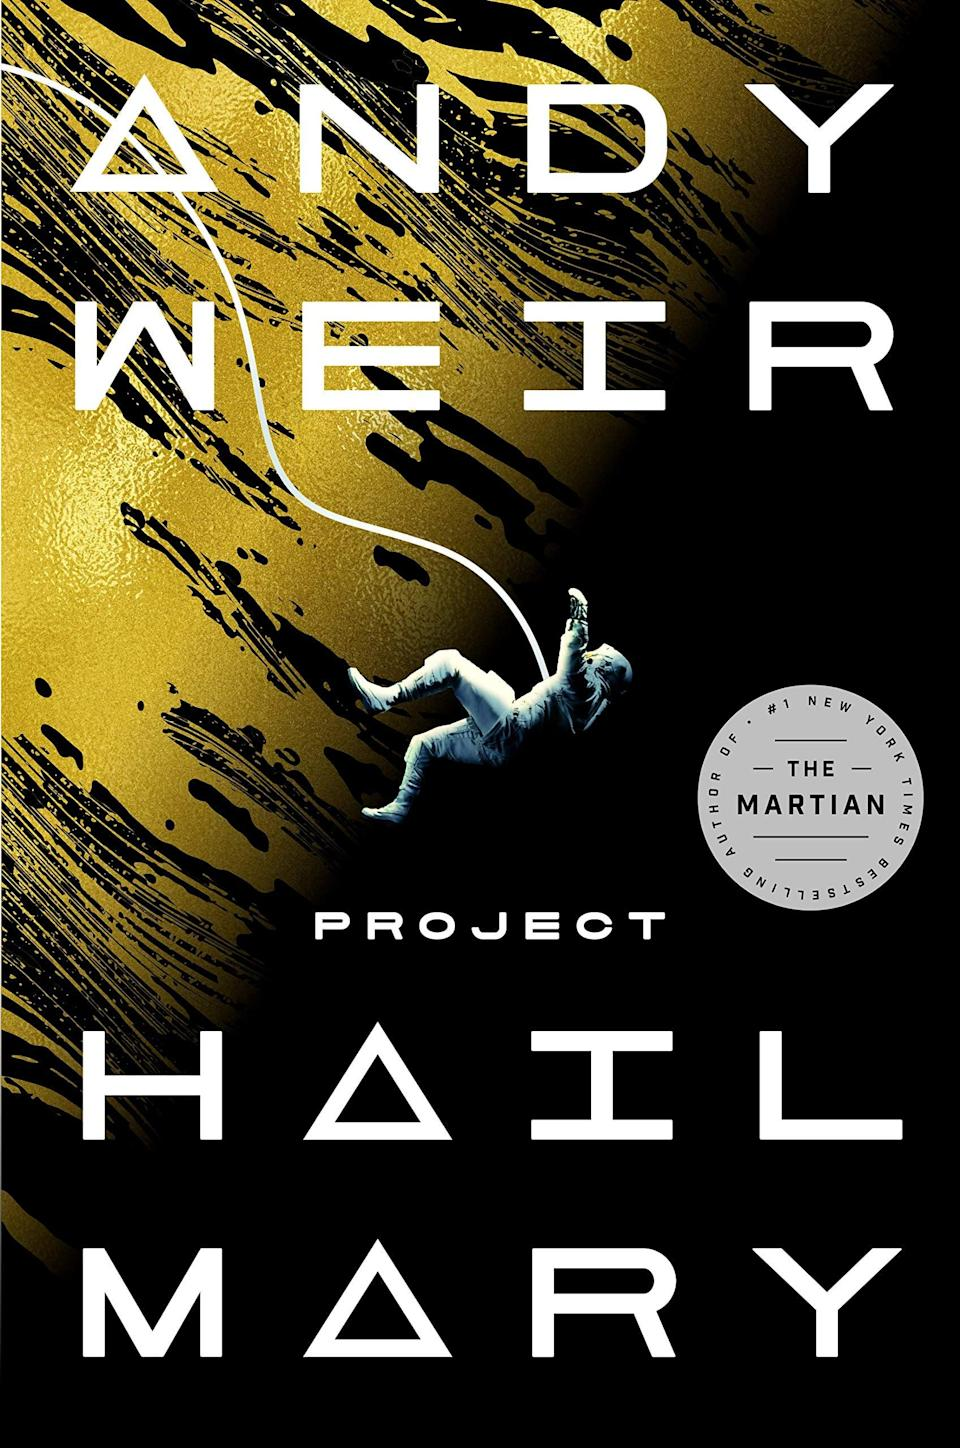 <p><strong>The Martian</strong> author Andy Weir has written another intense space-set novel that's sure to leave fans on the edge of their seats. <span><strong>Project Hail Mary</strong></span> follows a man who holds the fate of the world in his hands. The only trouble is he can barely remember who he is, let alone how to save the world from the far reaches of space. </p> <p><em>Out May 4</em></p>